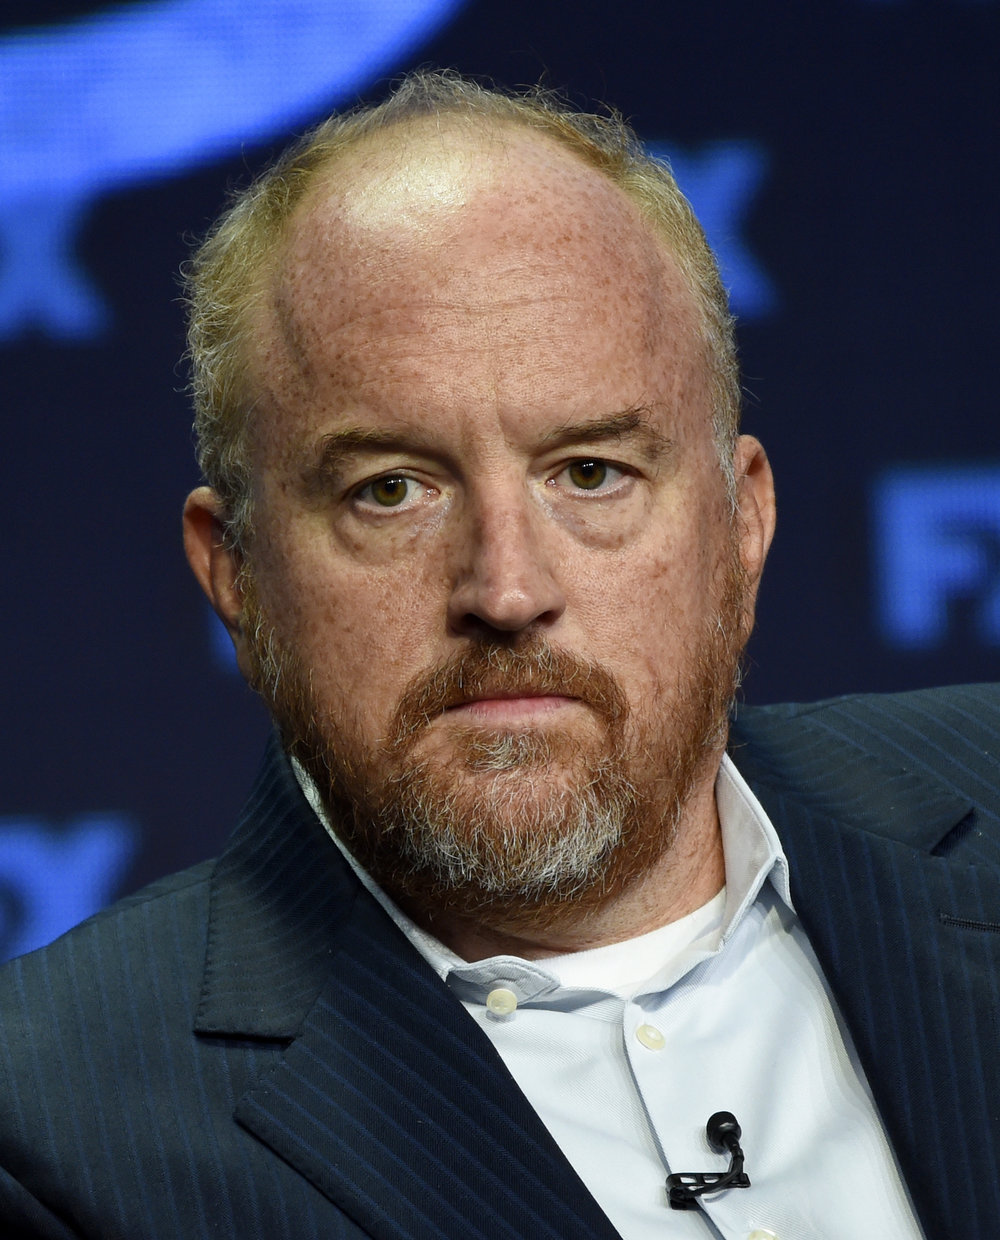 On Nov. 9, 2017, the New York Times broke the story that five women accused Louis C.K. of sexual misconduct. The following day Louis C.K. released a statement confirming these allegations were true. (Chris Pizzello/AP)